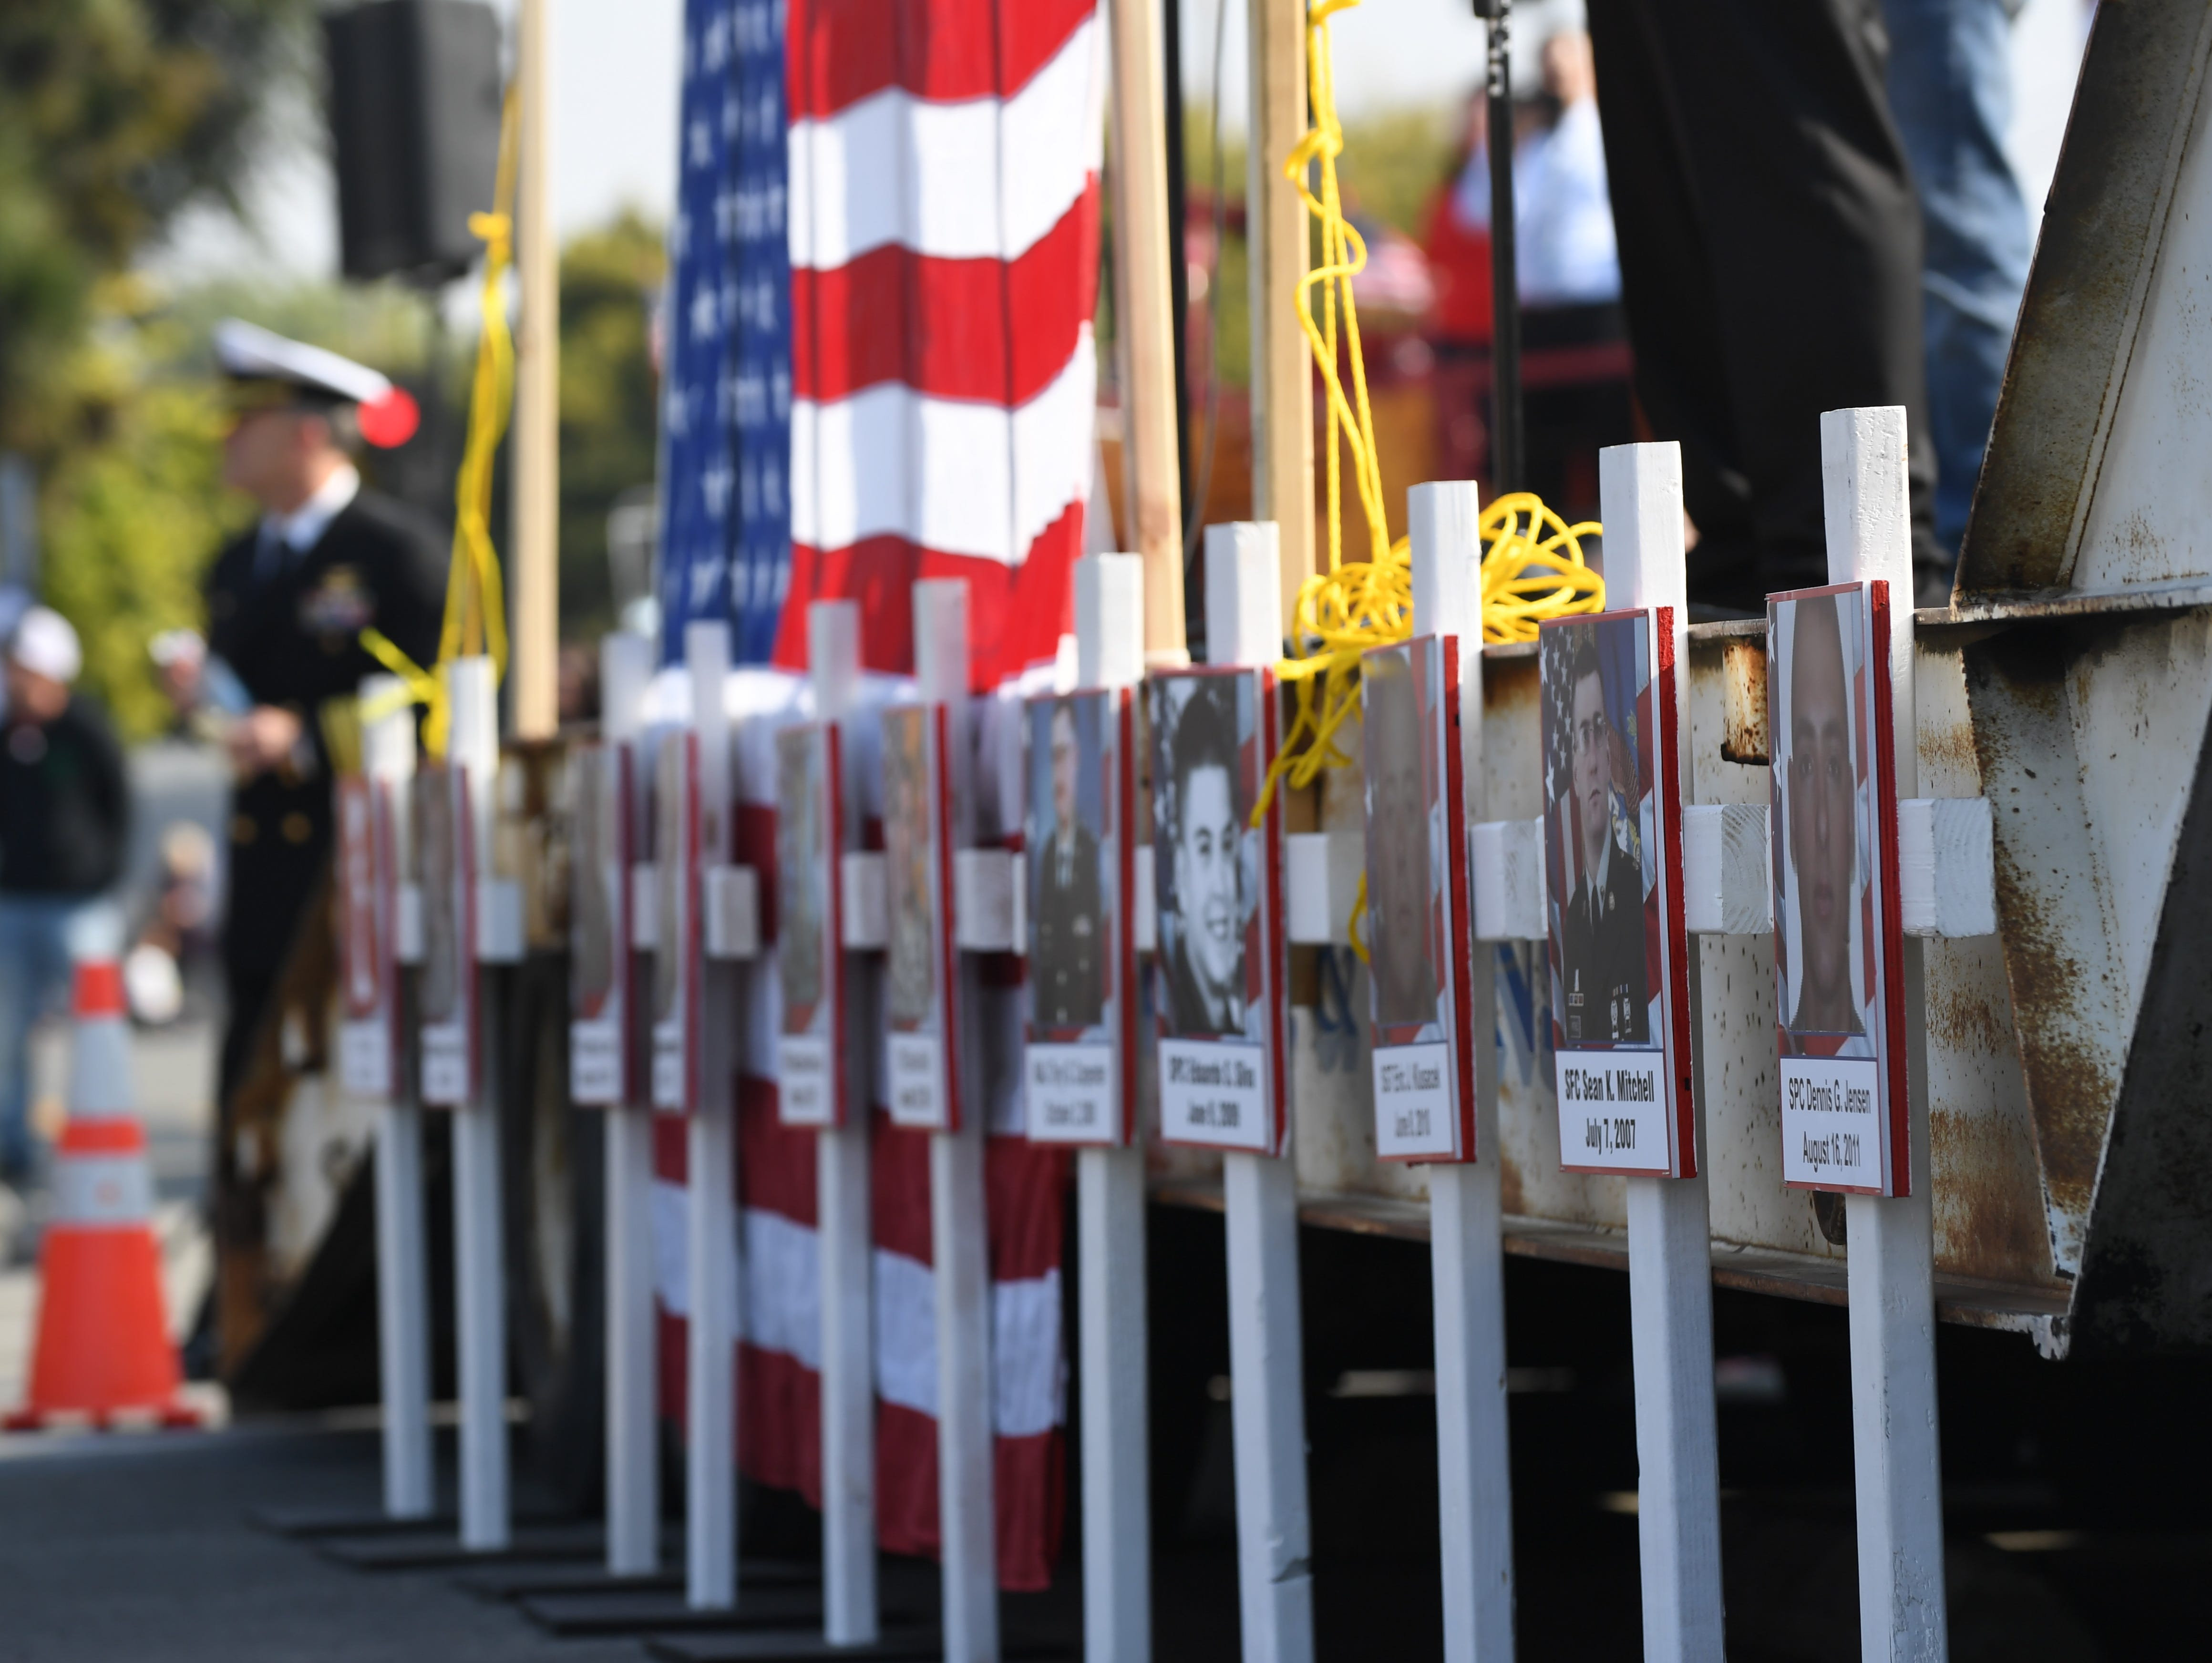 Crosses commemorating service members who have passed away were placed at the front of the Monterey County Veterans Day Parade in Salinas.